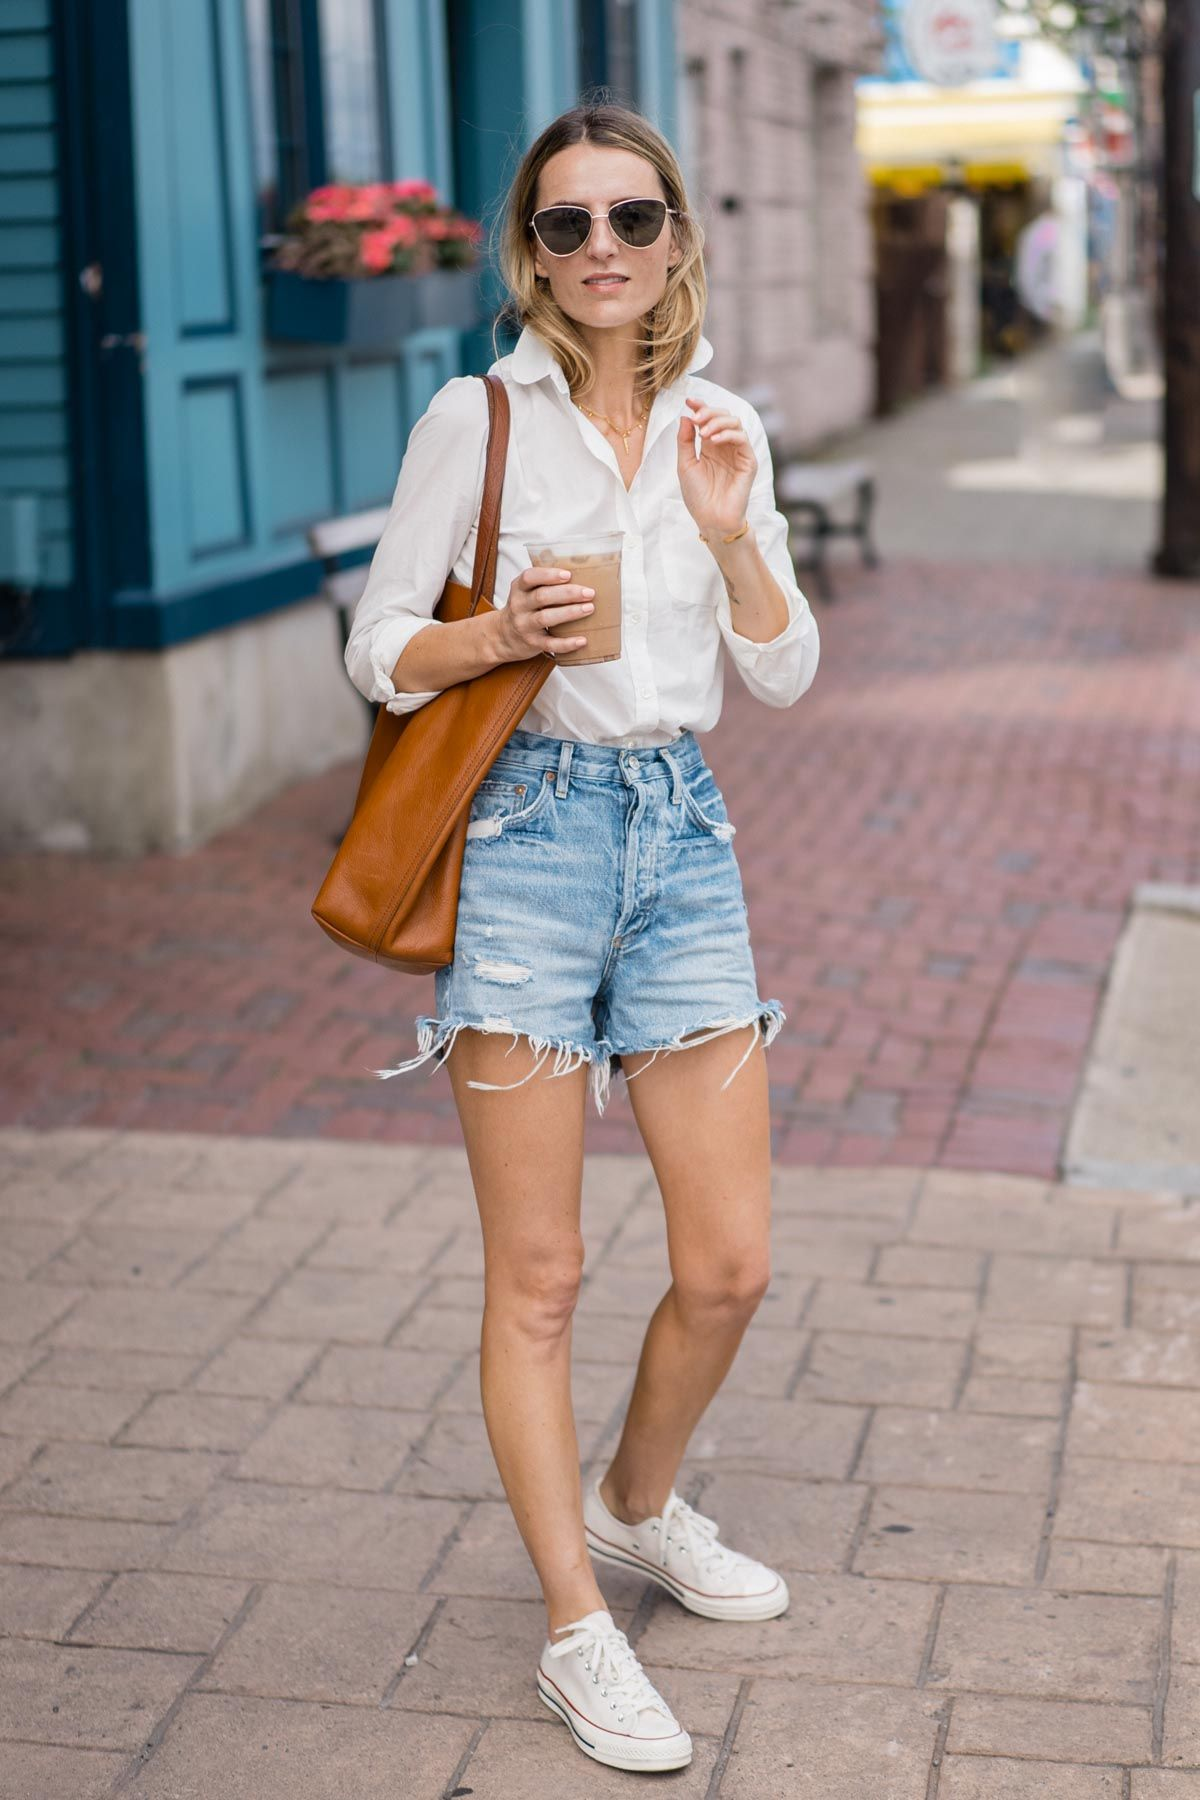 rosado Viajero Colgar  Top 5 Denim Shorts | Jess Ann Kirby | Simple summer outfits, Cool summer  outfits, Short outfits